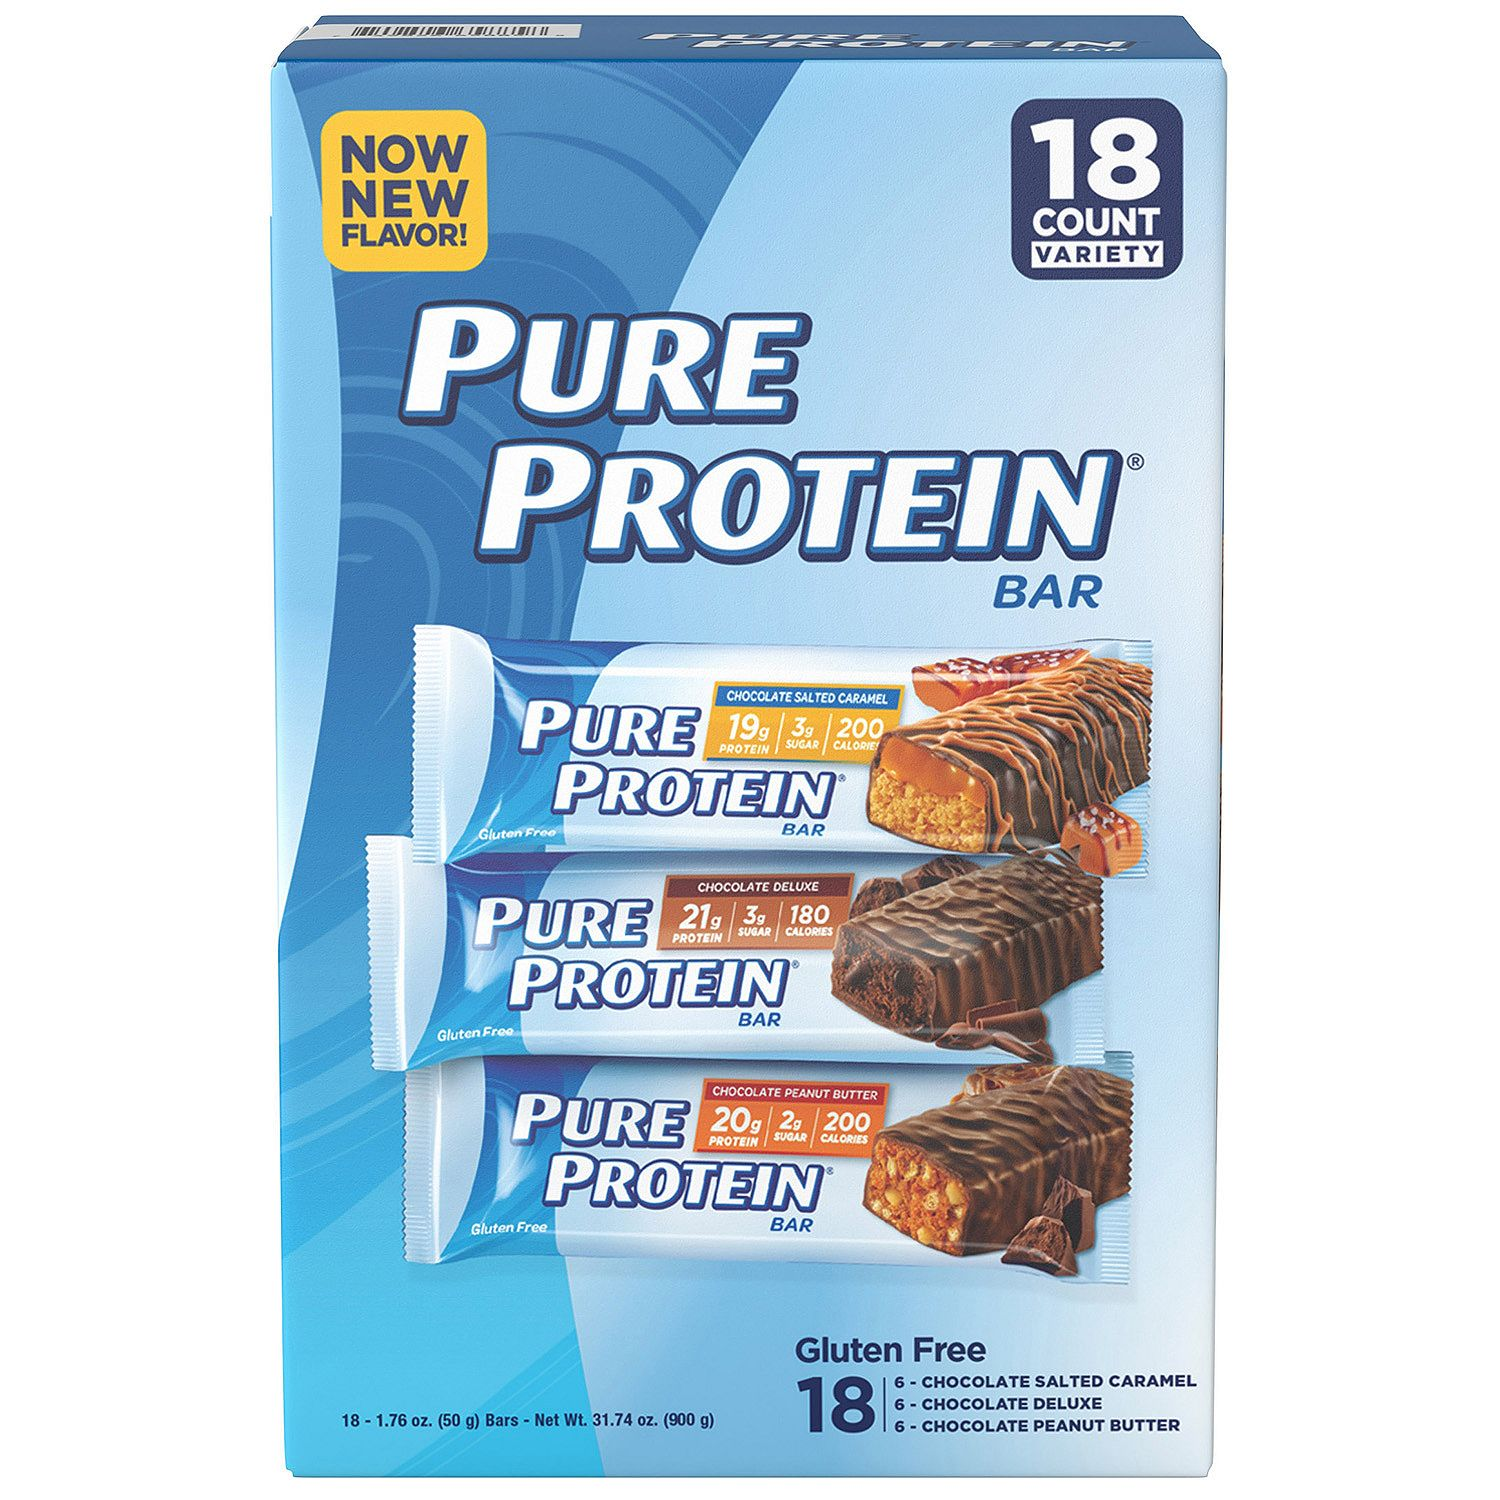 Pure Protein Bar, Variety Pack, 21g Protein, 18 Ct